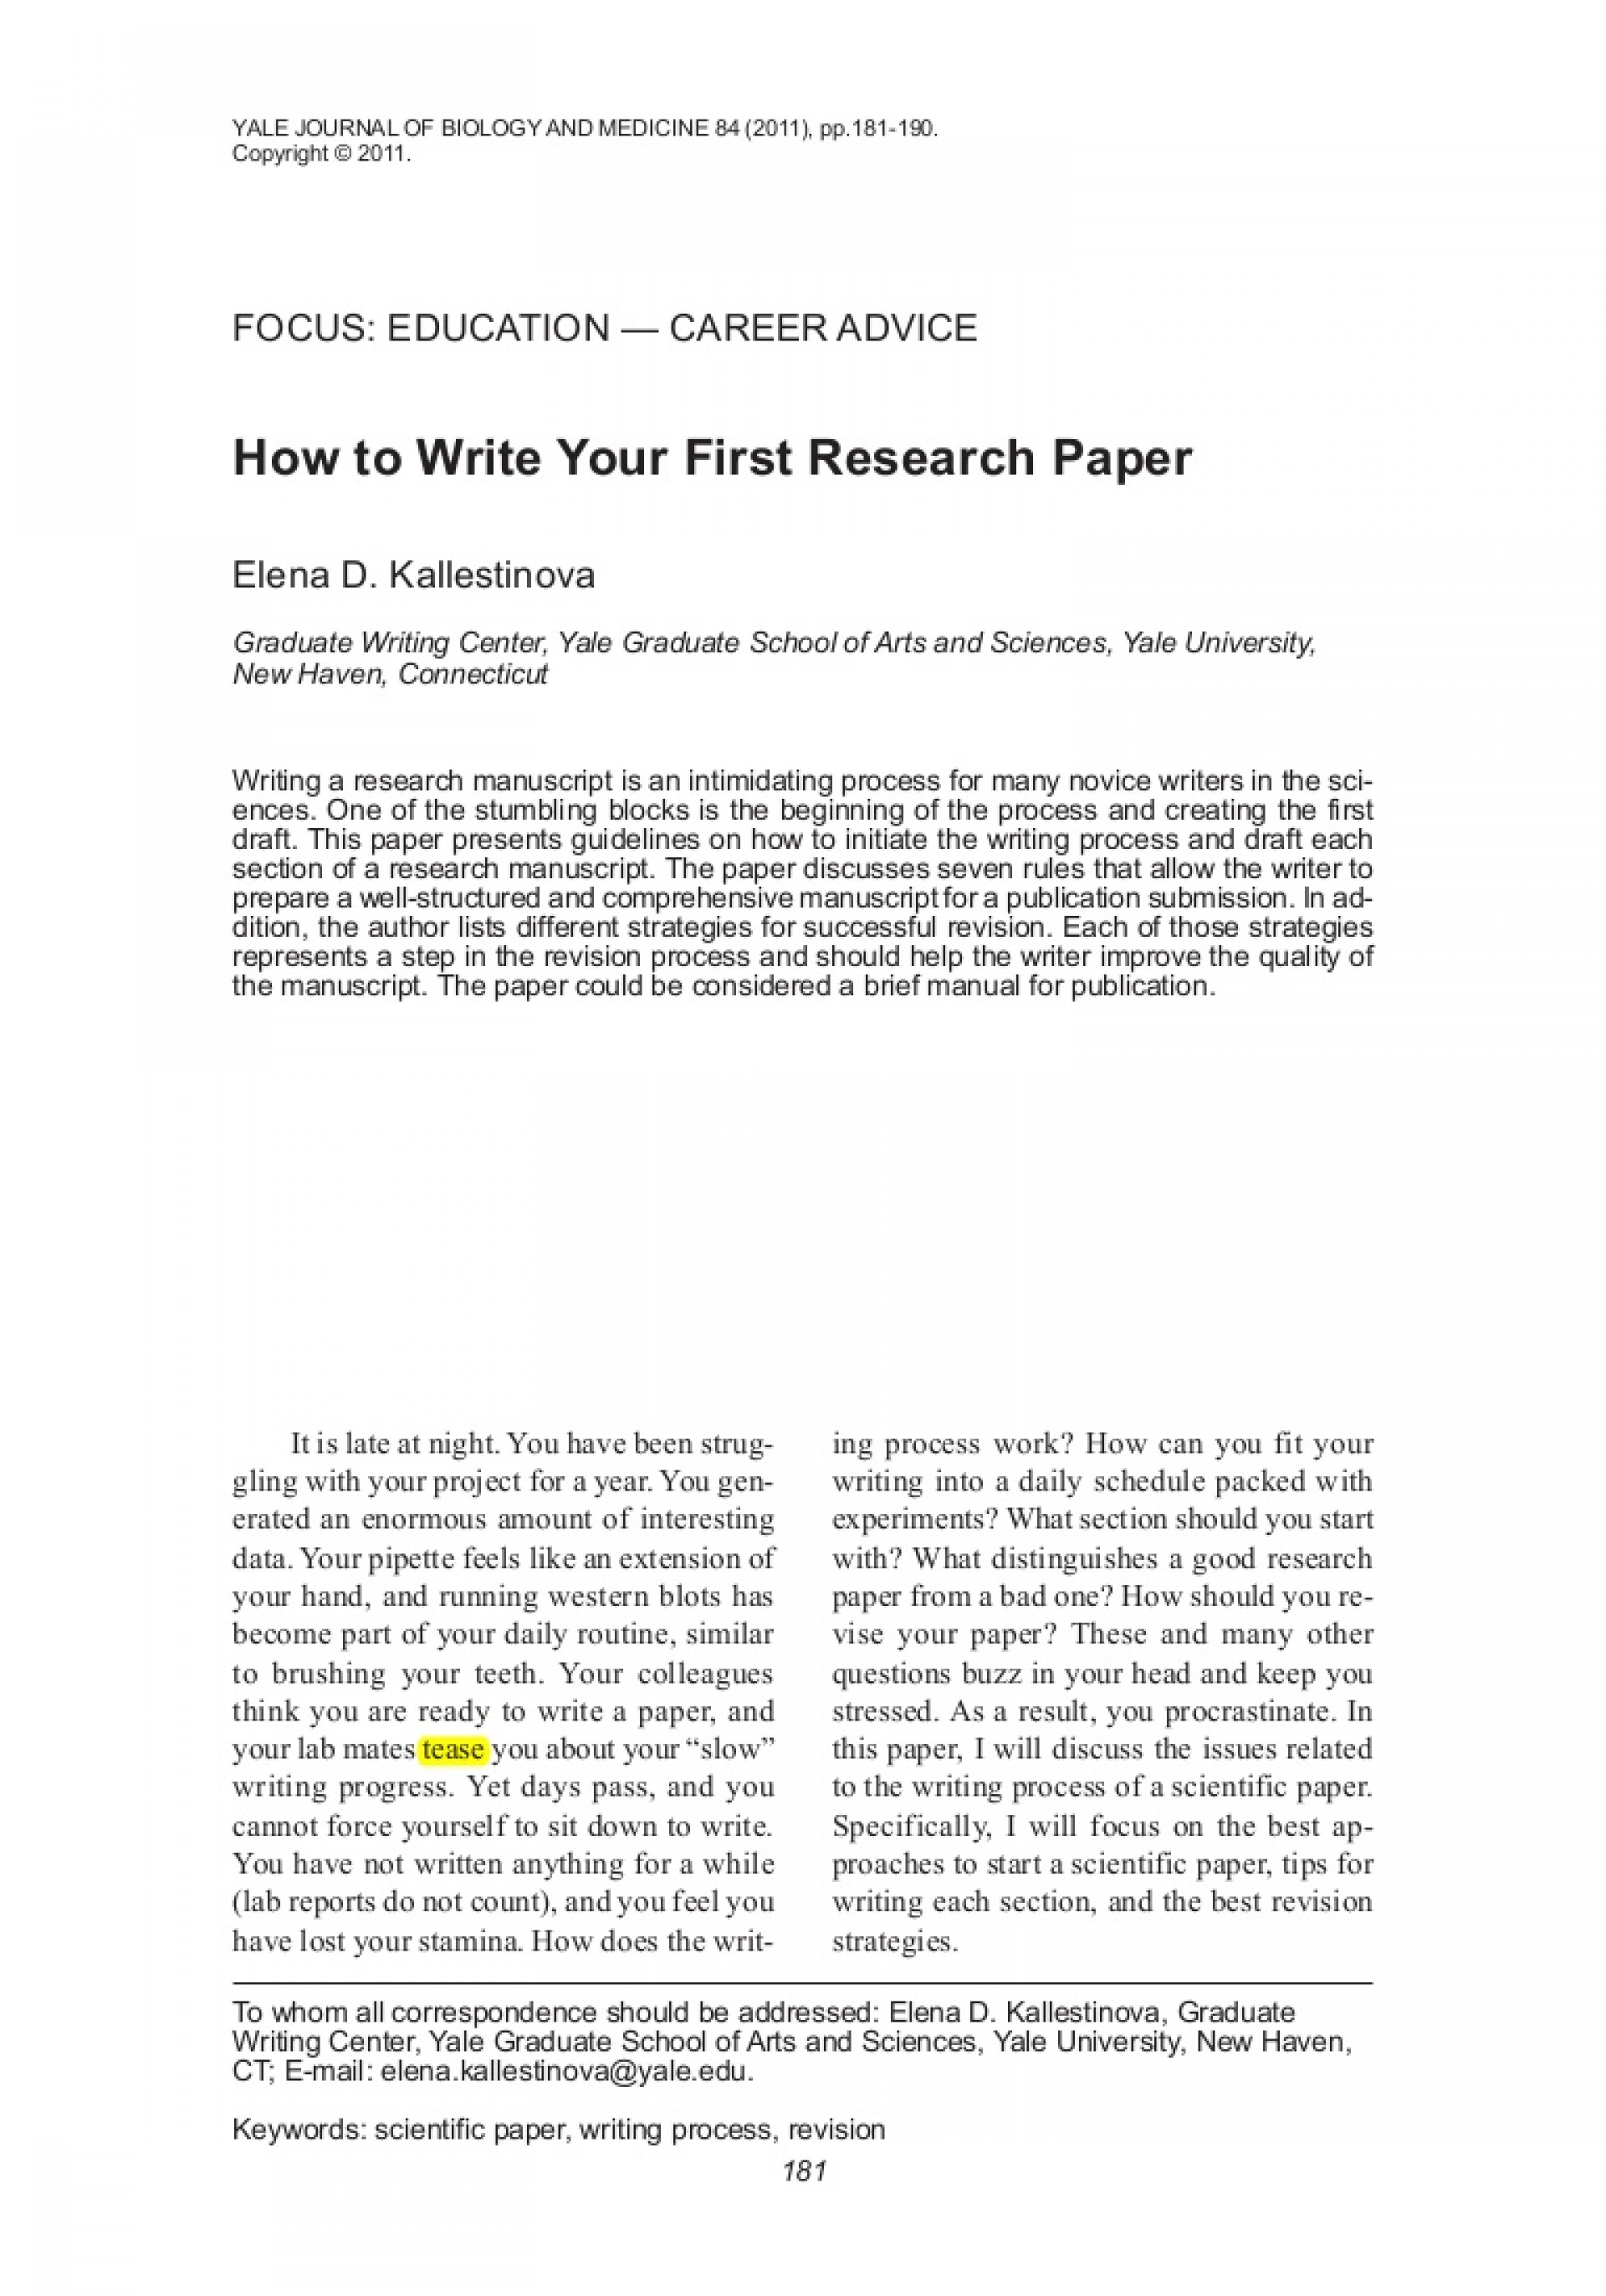 013 How To Write Research Papers Paper Howtowriteyourfirstresearchpaper Lva1 App6891 Thumbnail Best A Conclusion For Ppt Introduction College Dummies 1920